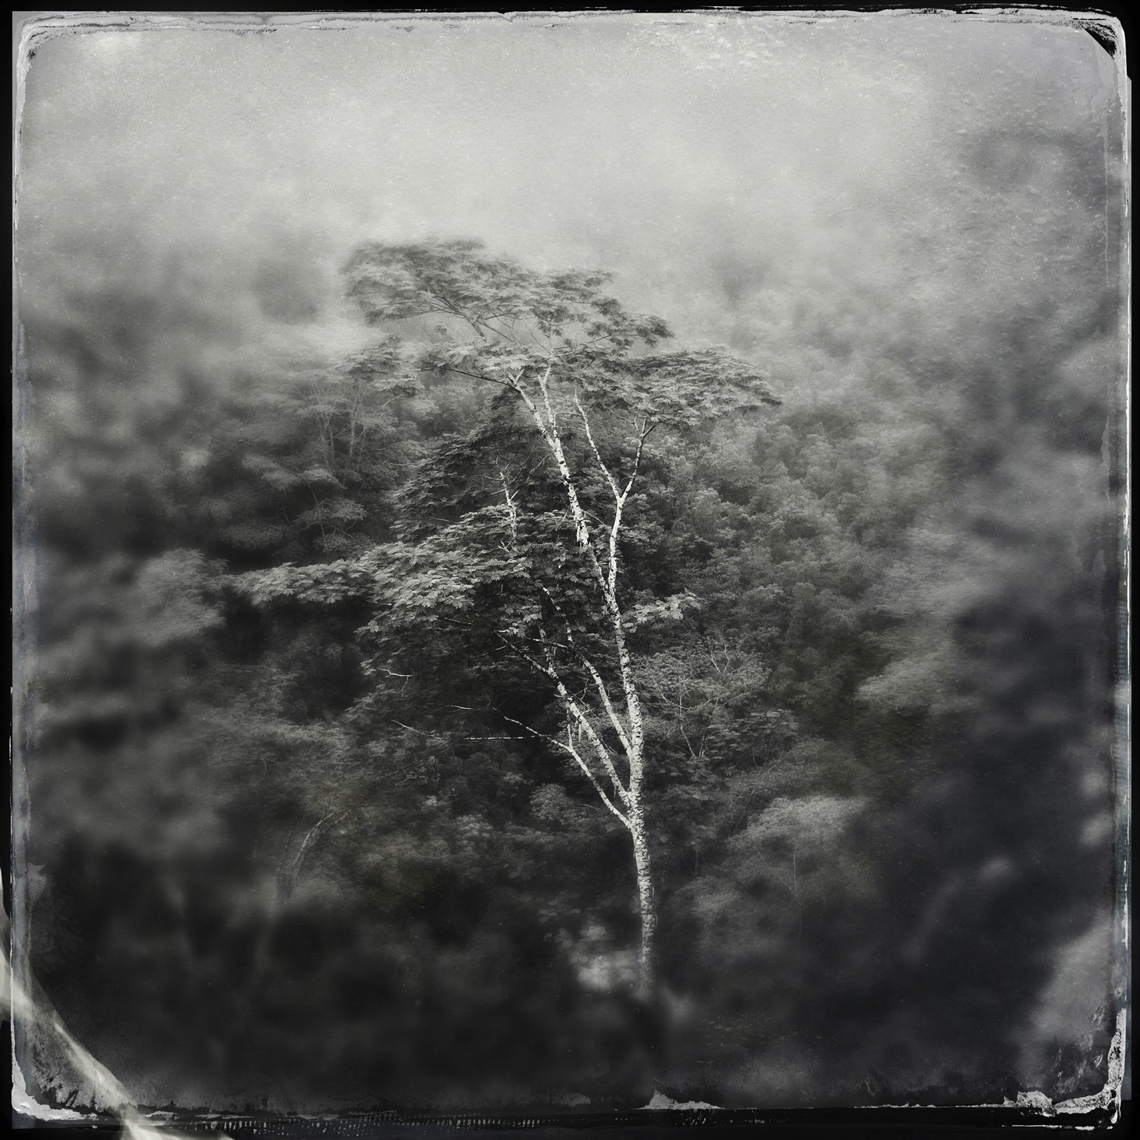 Jon Wyatt Photography - tree in volcanic crater, Samoa. Hipstamatic